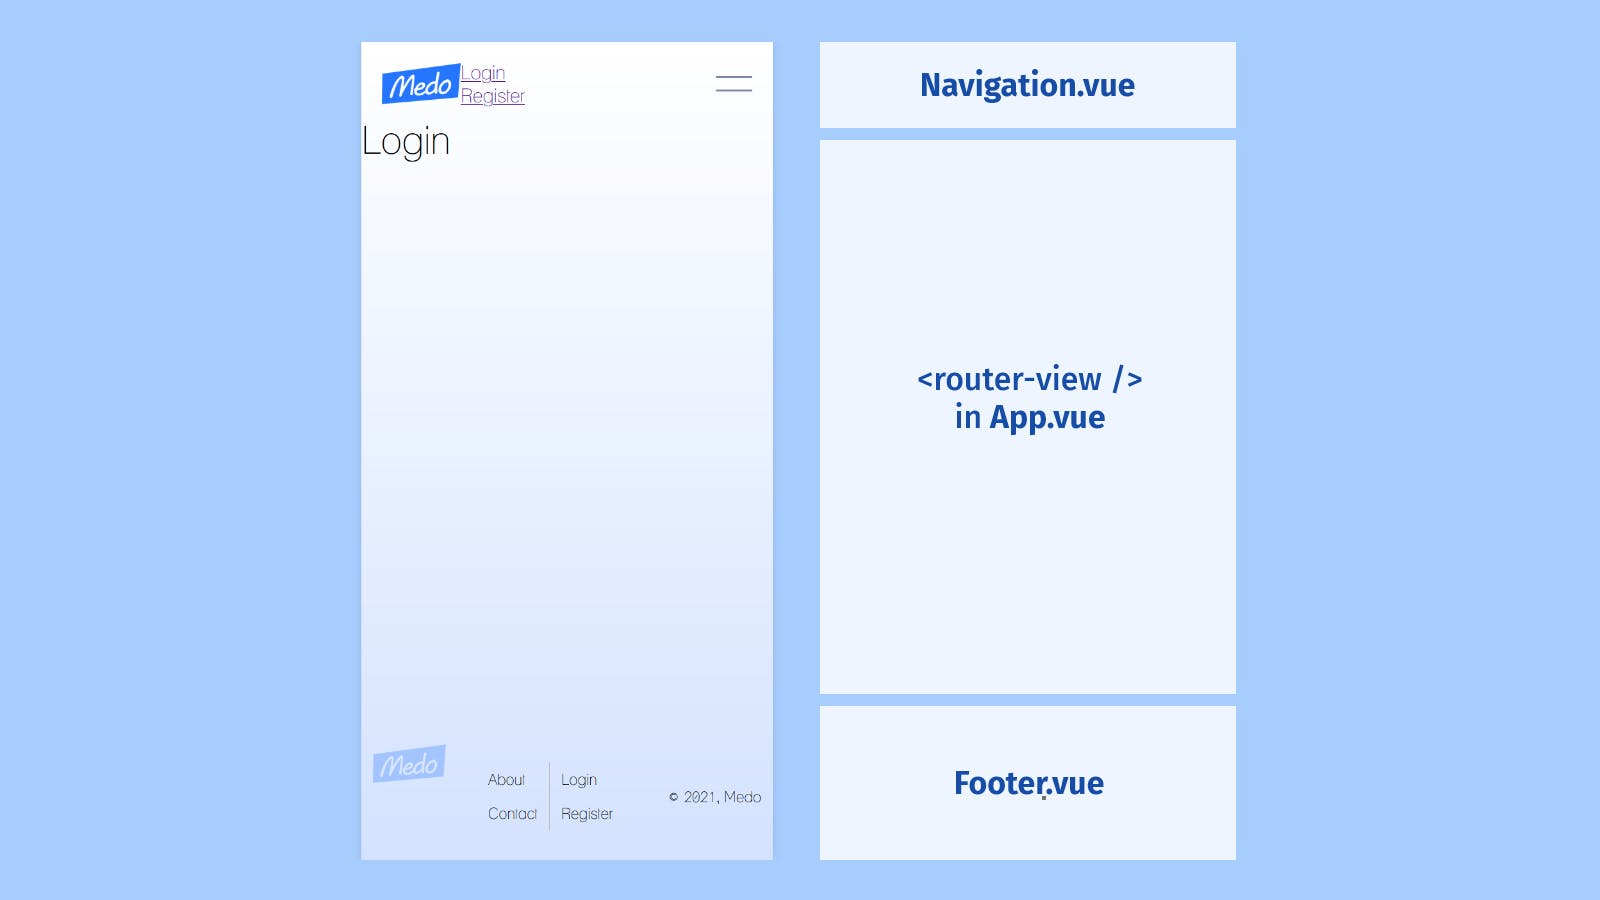 vue_3_img_1_structured mock-up@2x.png